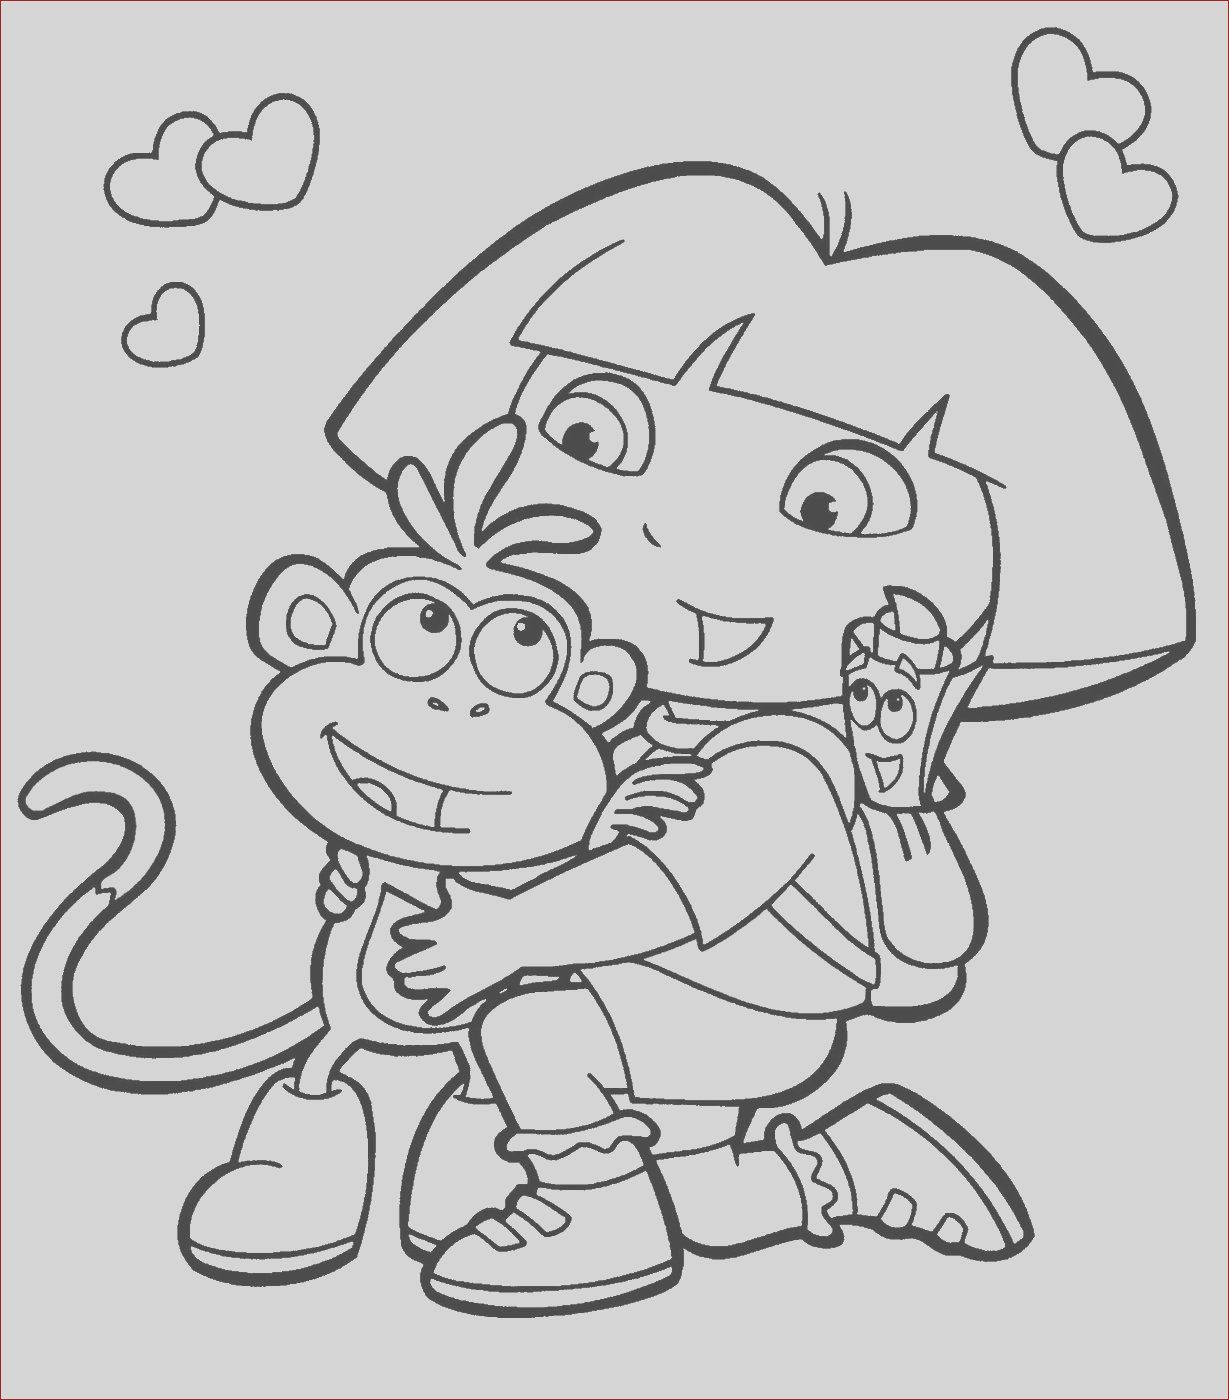 17 Best Of Image Of Coloring Book Printers In 2020 Birthday Coloring Pages Kids Printable Coloring Pages Dora Coloring [ 1400 x 1229 Pixel ]